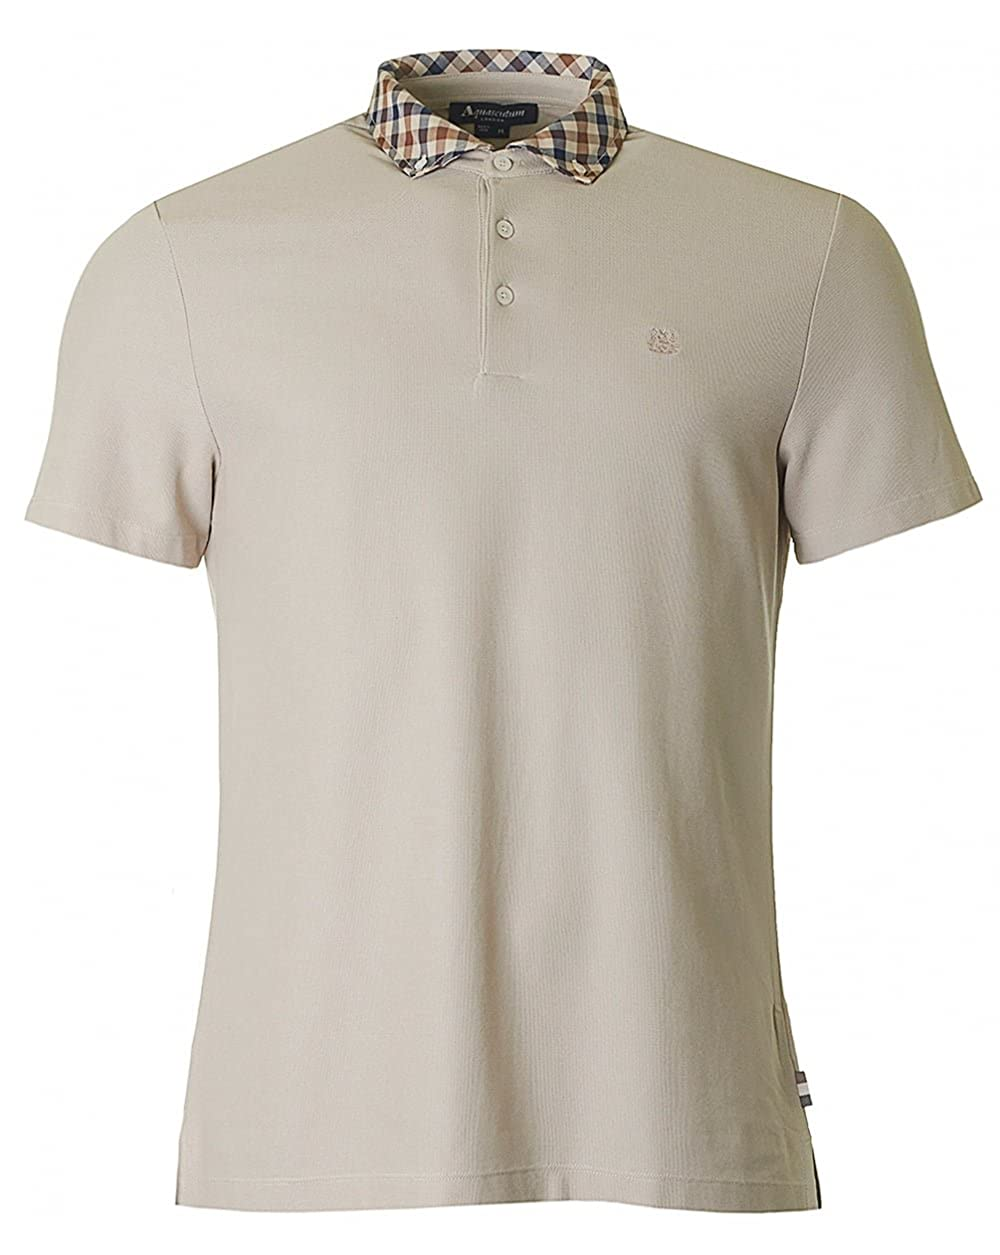 Aquascutum Connison Button Down Polo XXXL Beige: Amazon.es: Ropa y ...